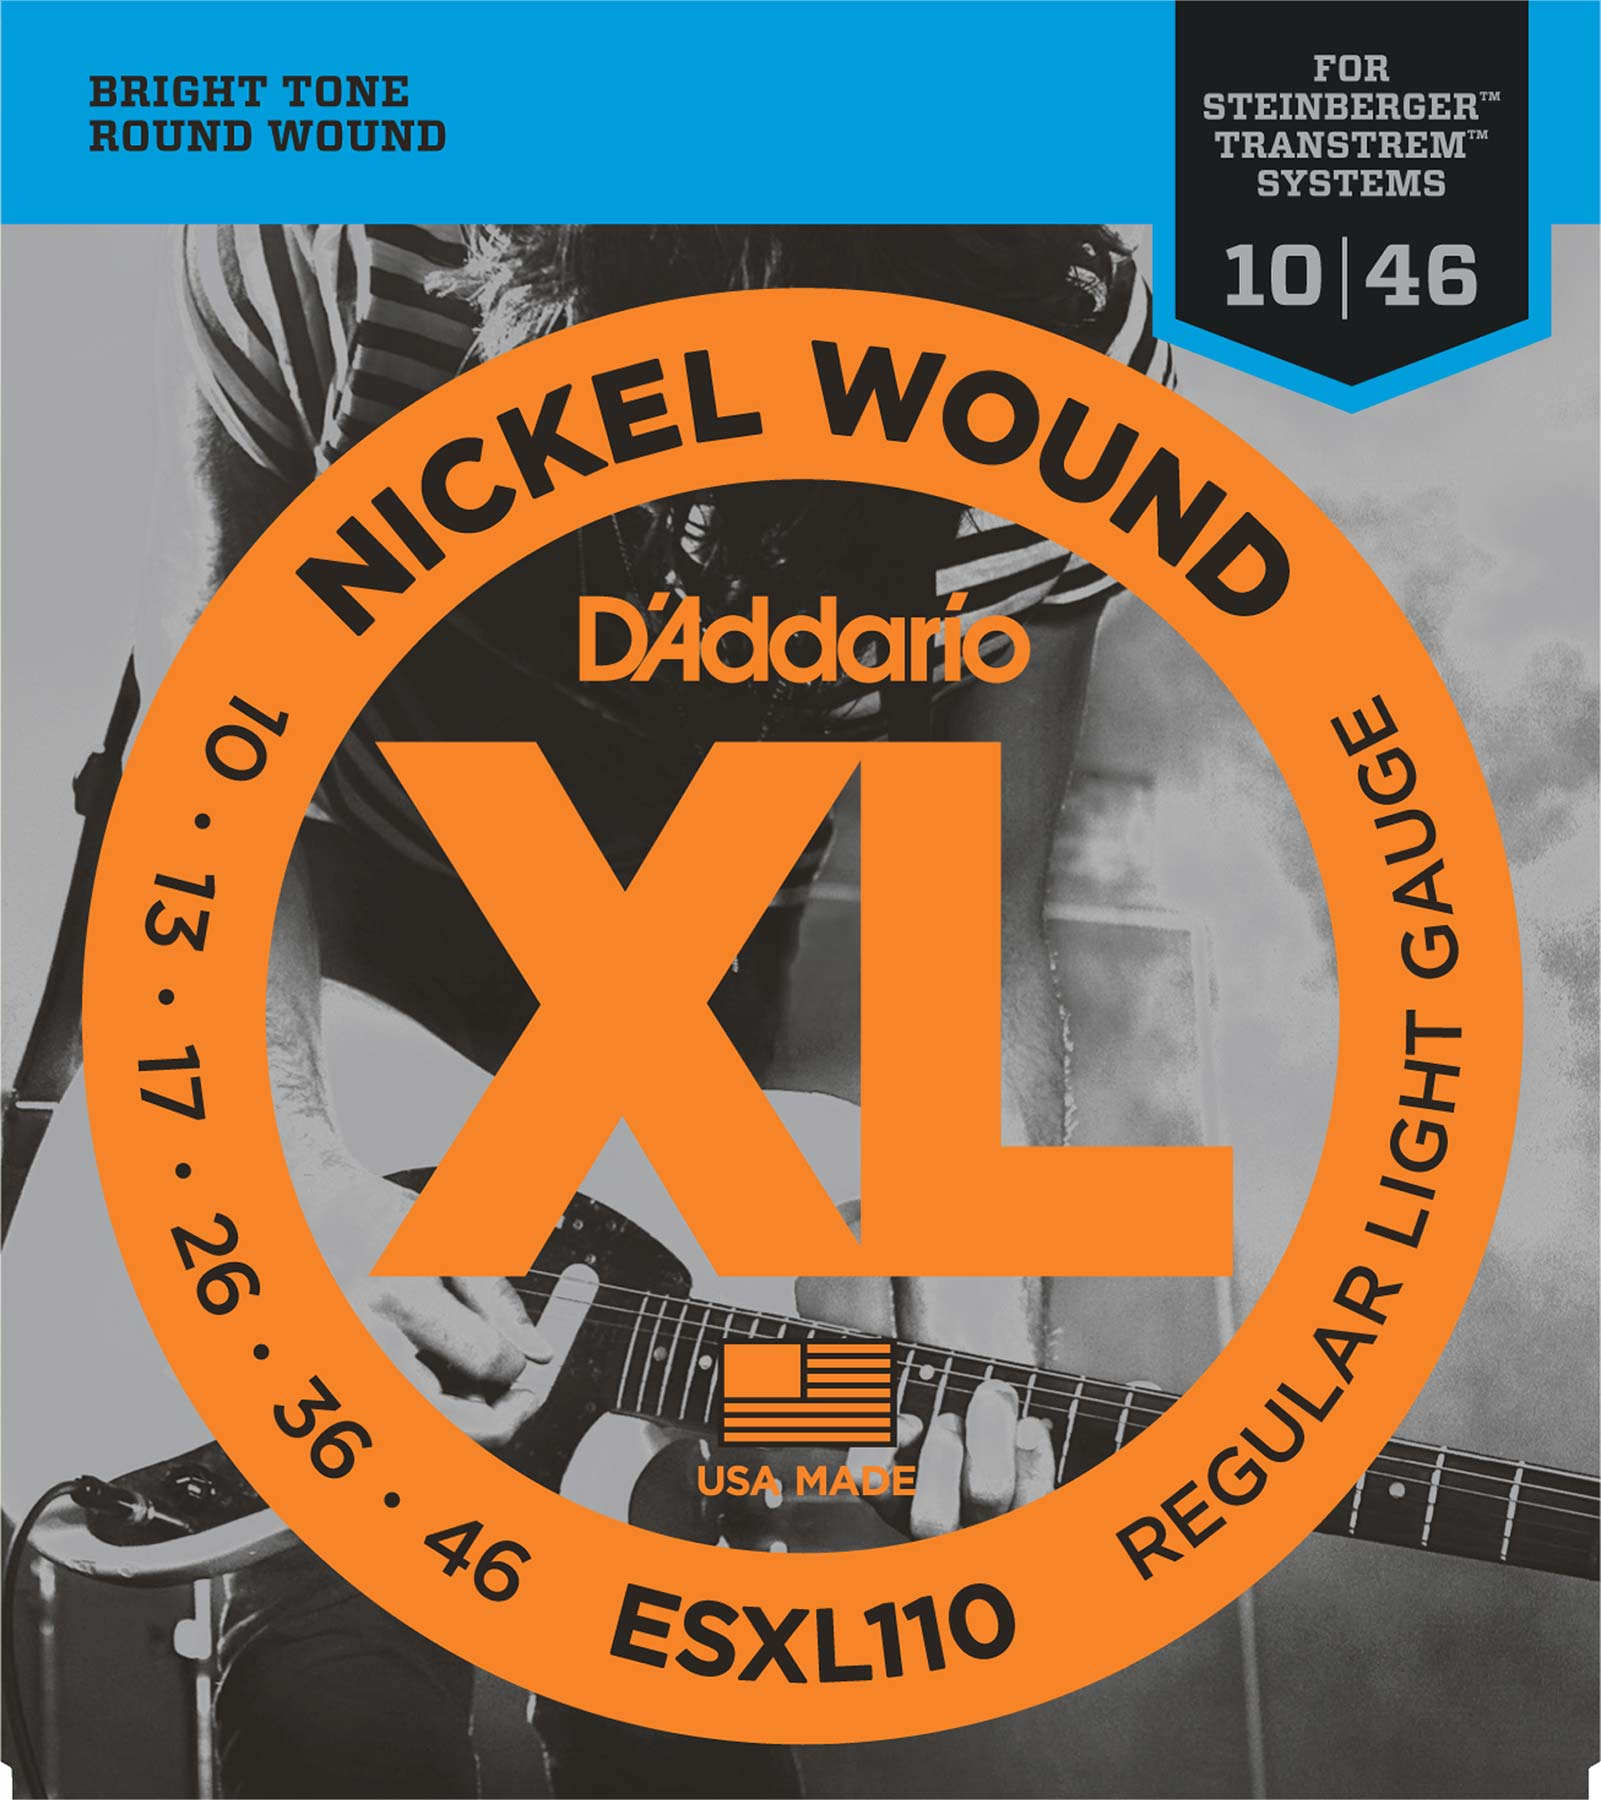 D'ADDARIO NICKEL WOULD DOUBLE BALL END ELECTRIC GUITAR STRINGS REGULAR LIGHT 10-46